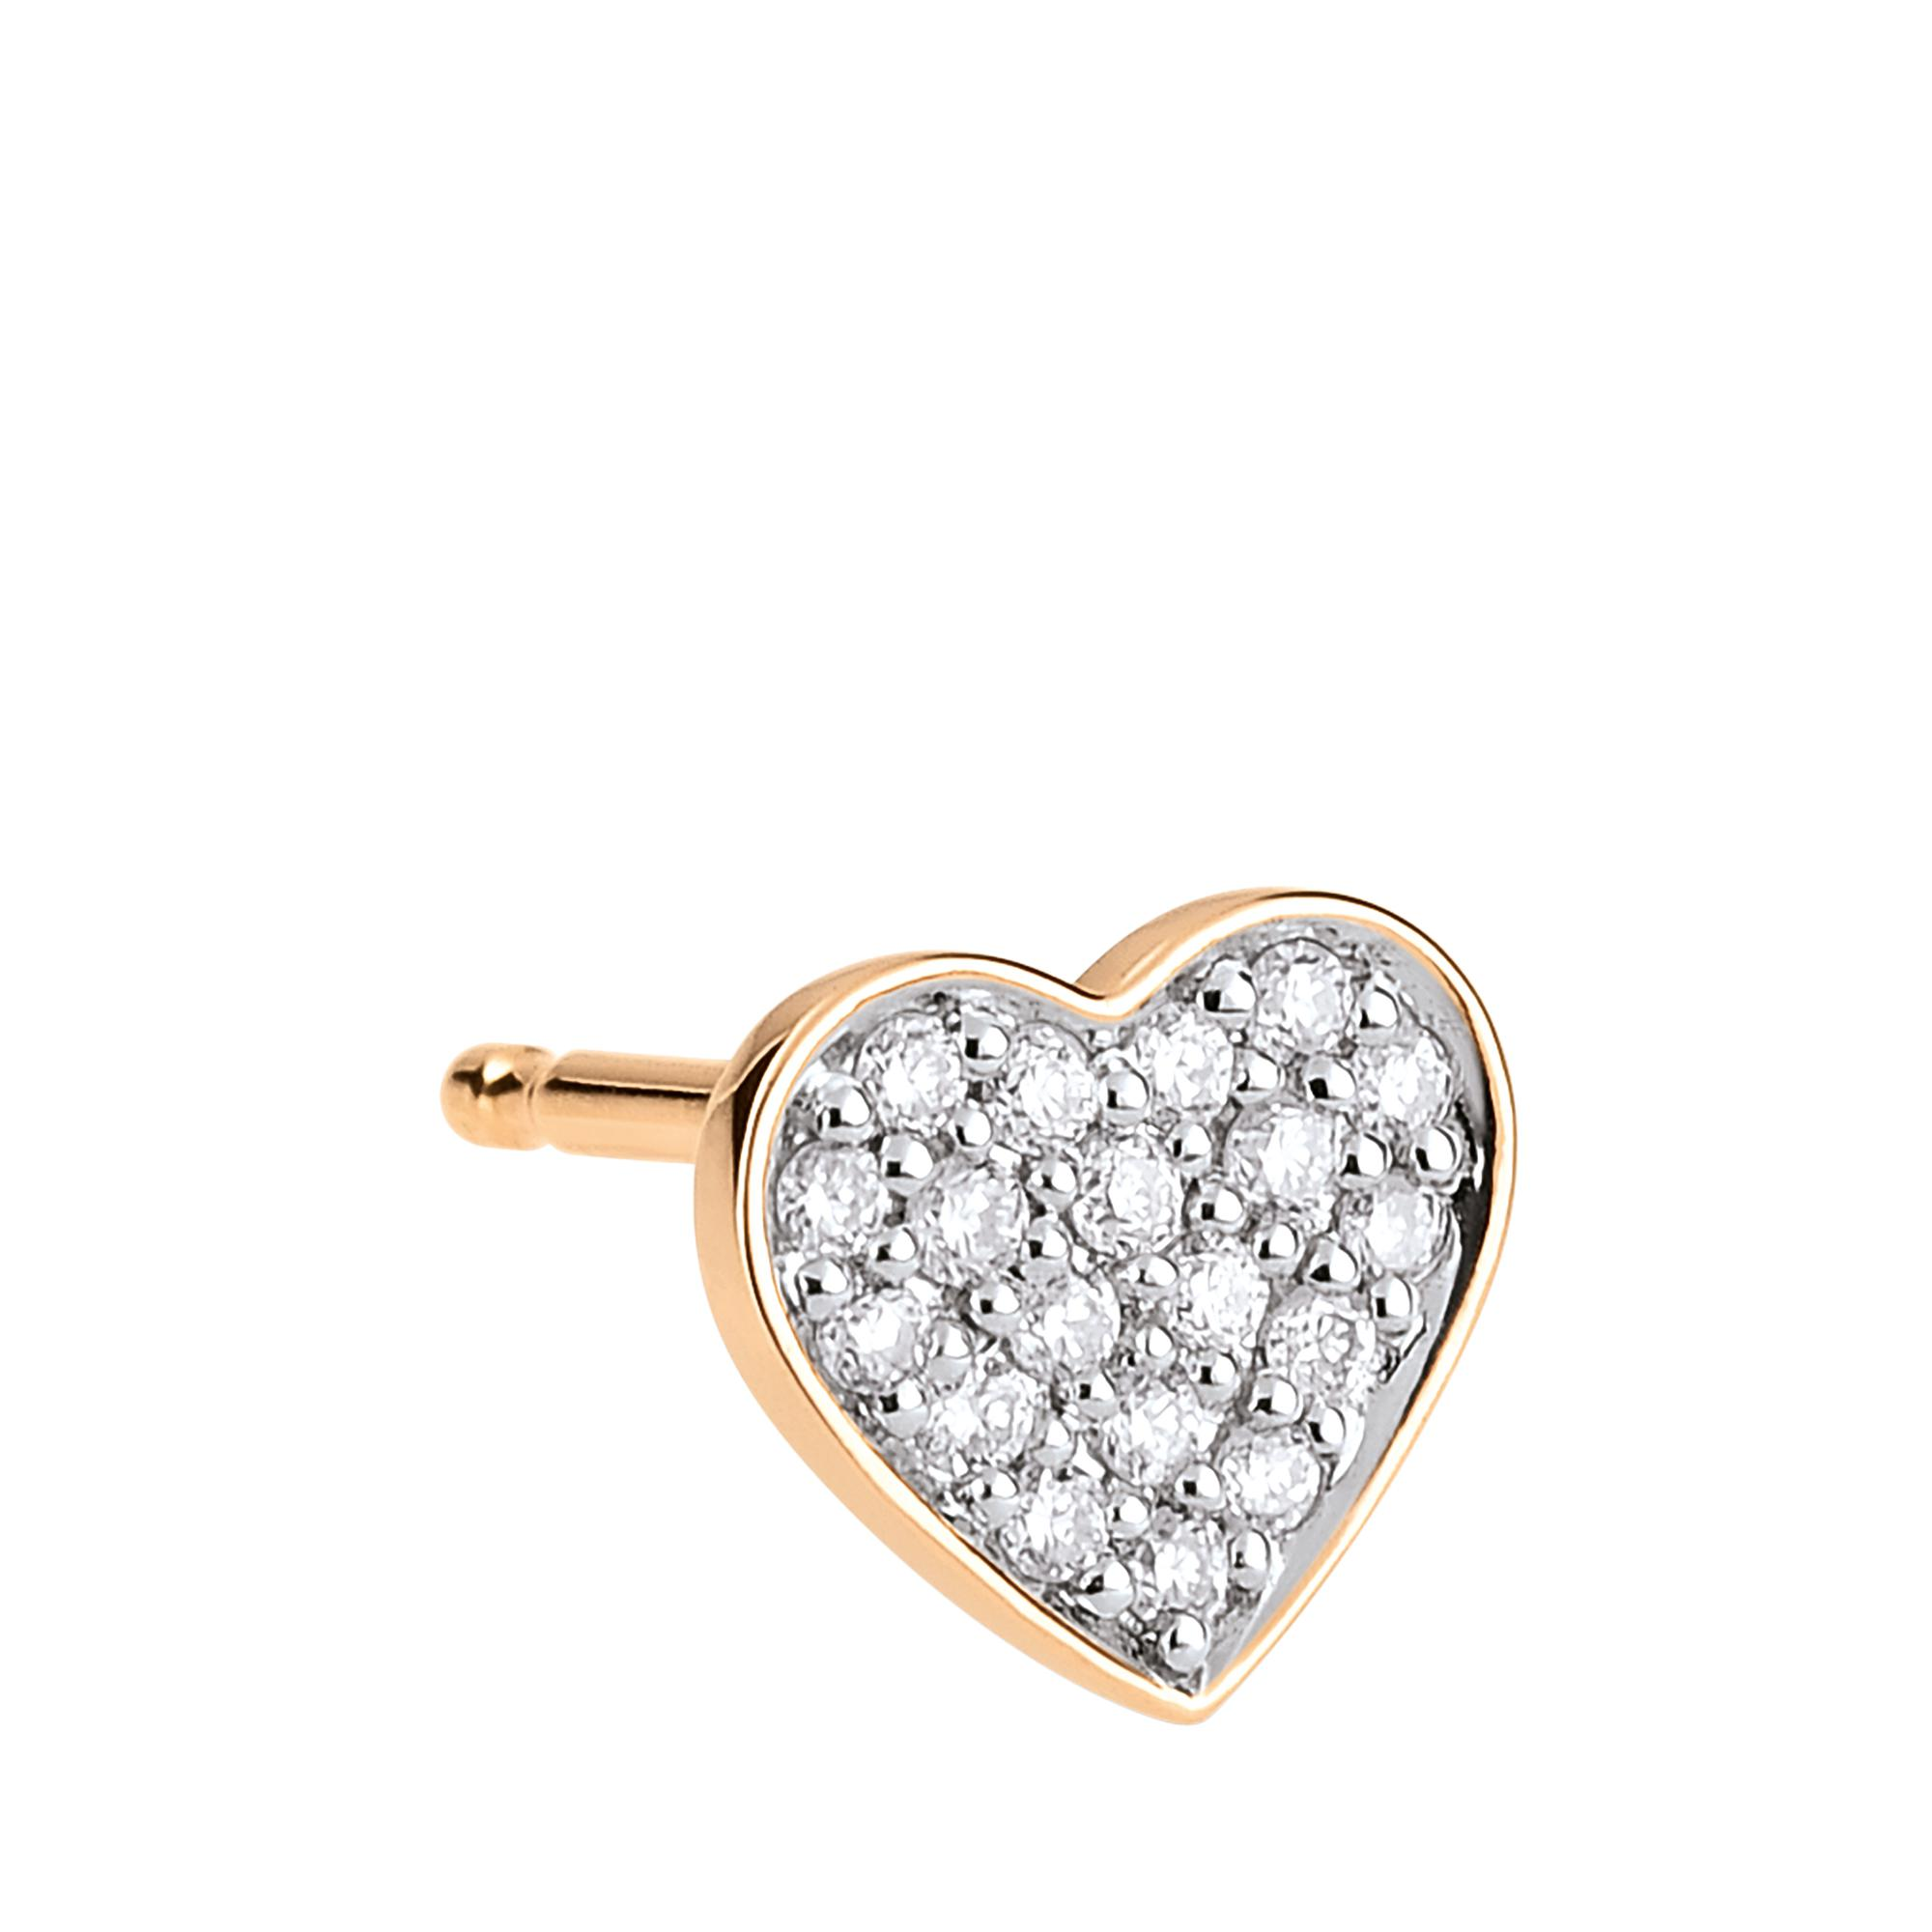 Single Tiny Diamond Heart Stud Earring in 18K Rose Gold and Diamonds Ginette NY tVdrjIUXA